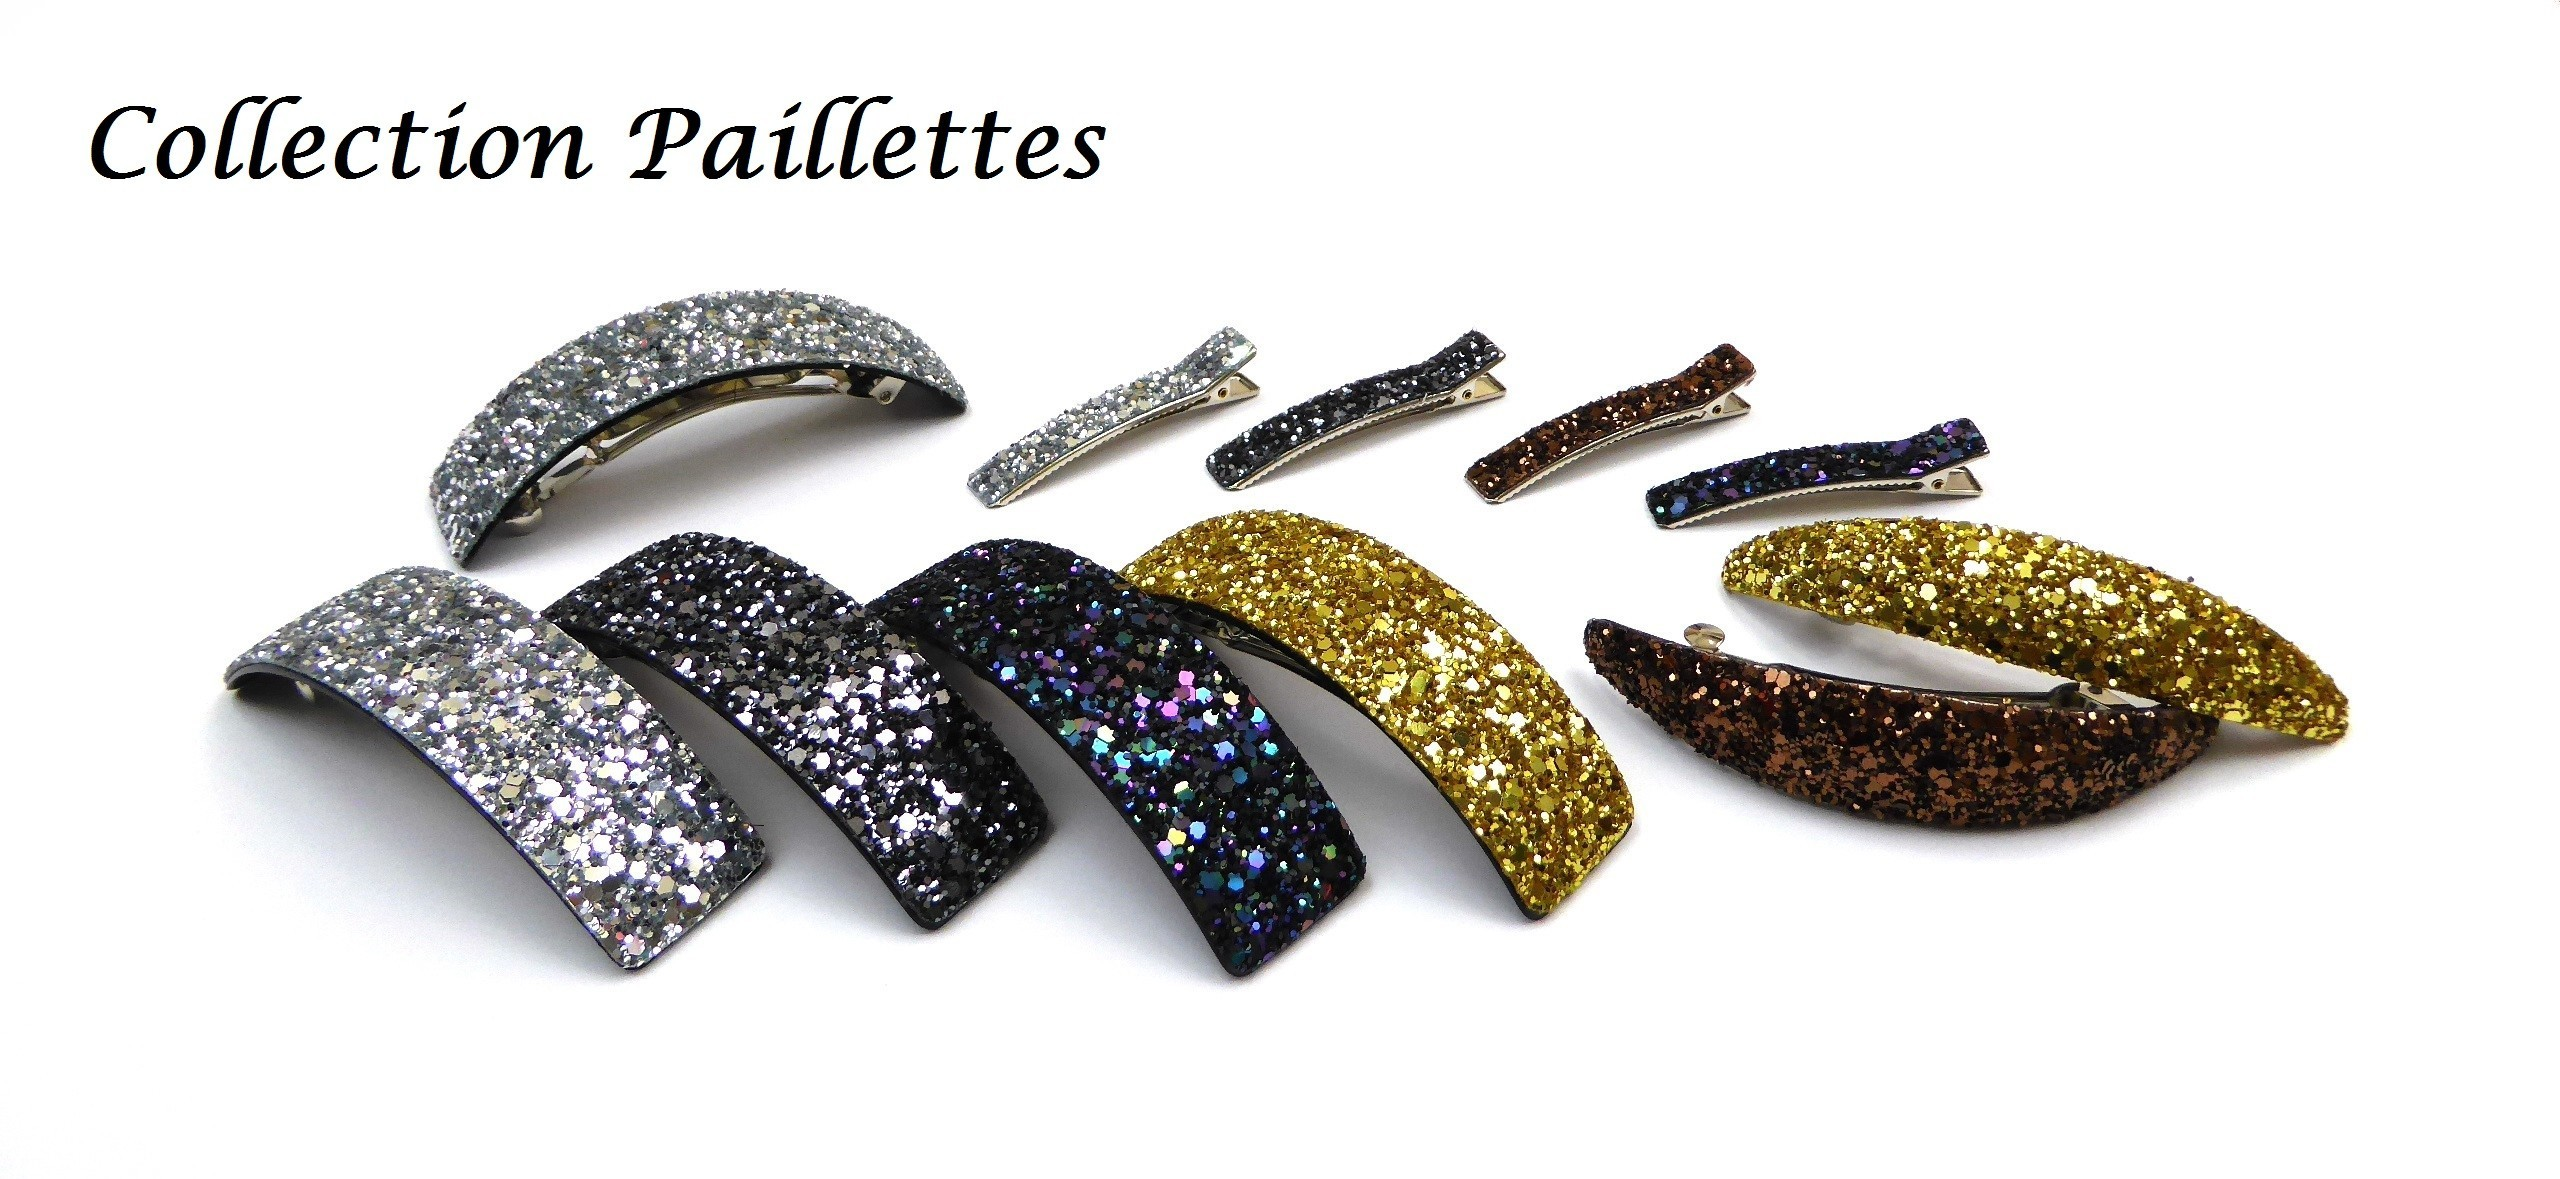 Collection paillettes